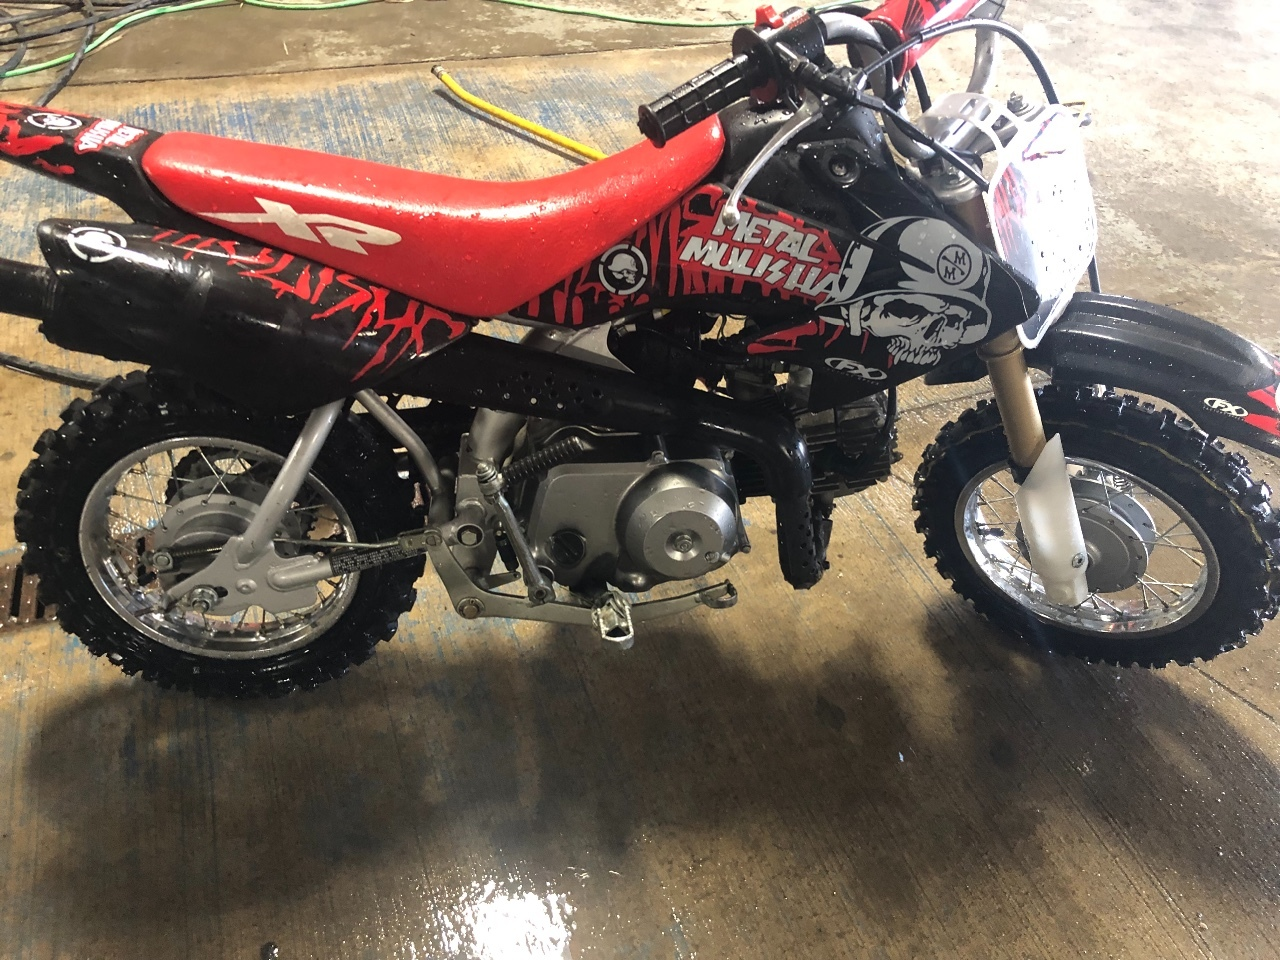 Used Crf 50 For Sale - Honda Motorcycle,Trailers